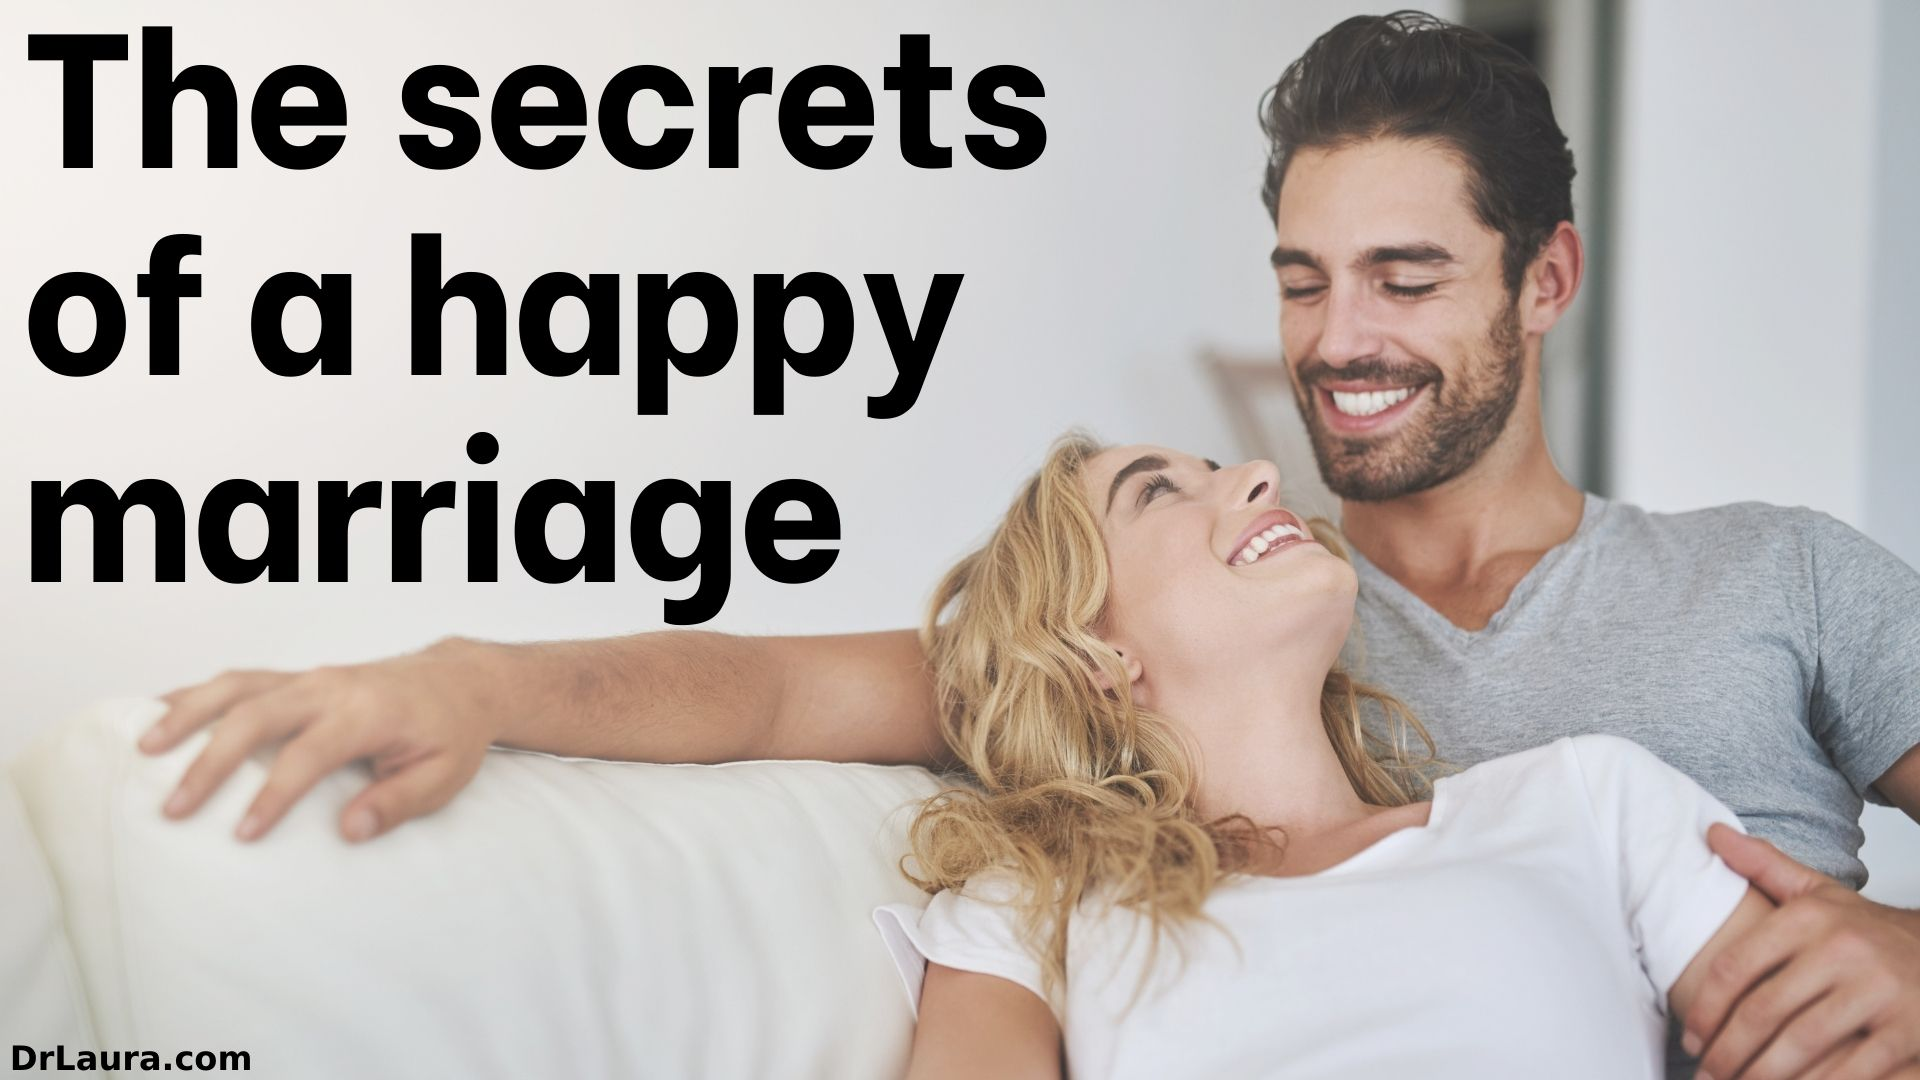 Email of the Day: Tips From an Extremely Happy Husband